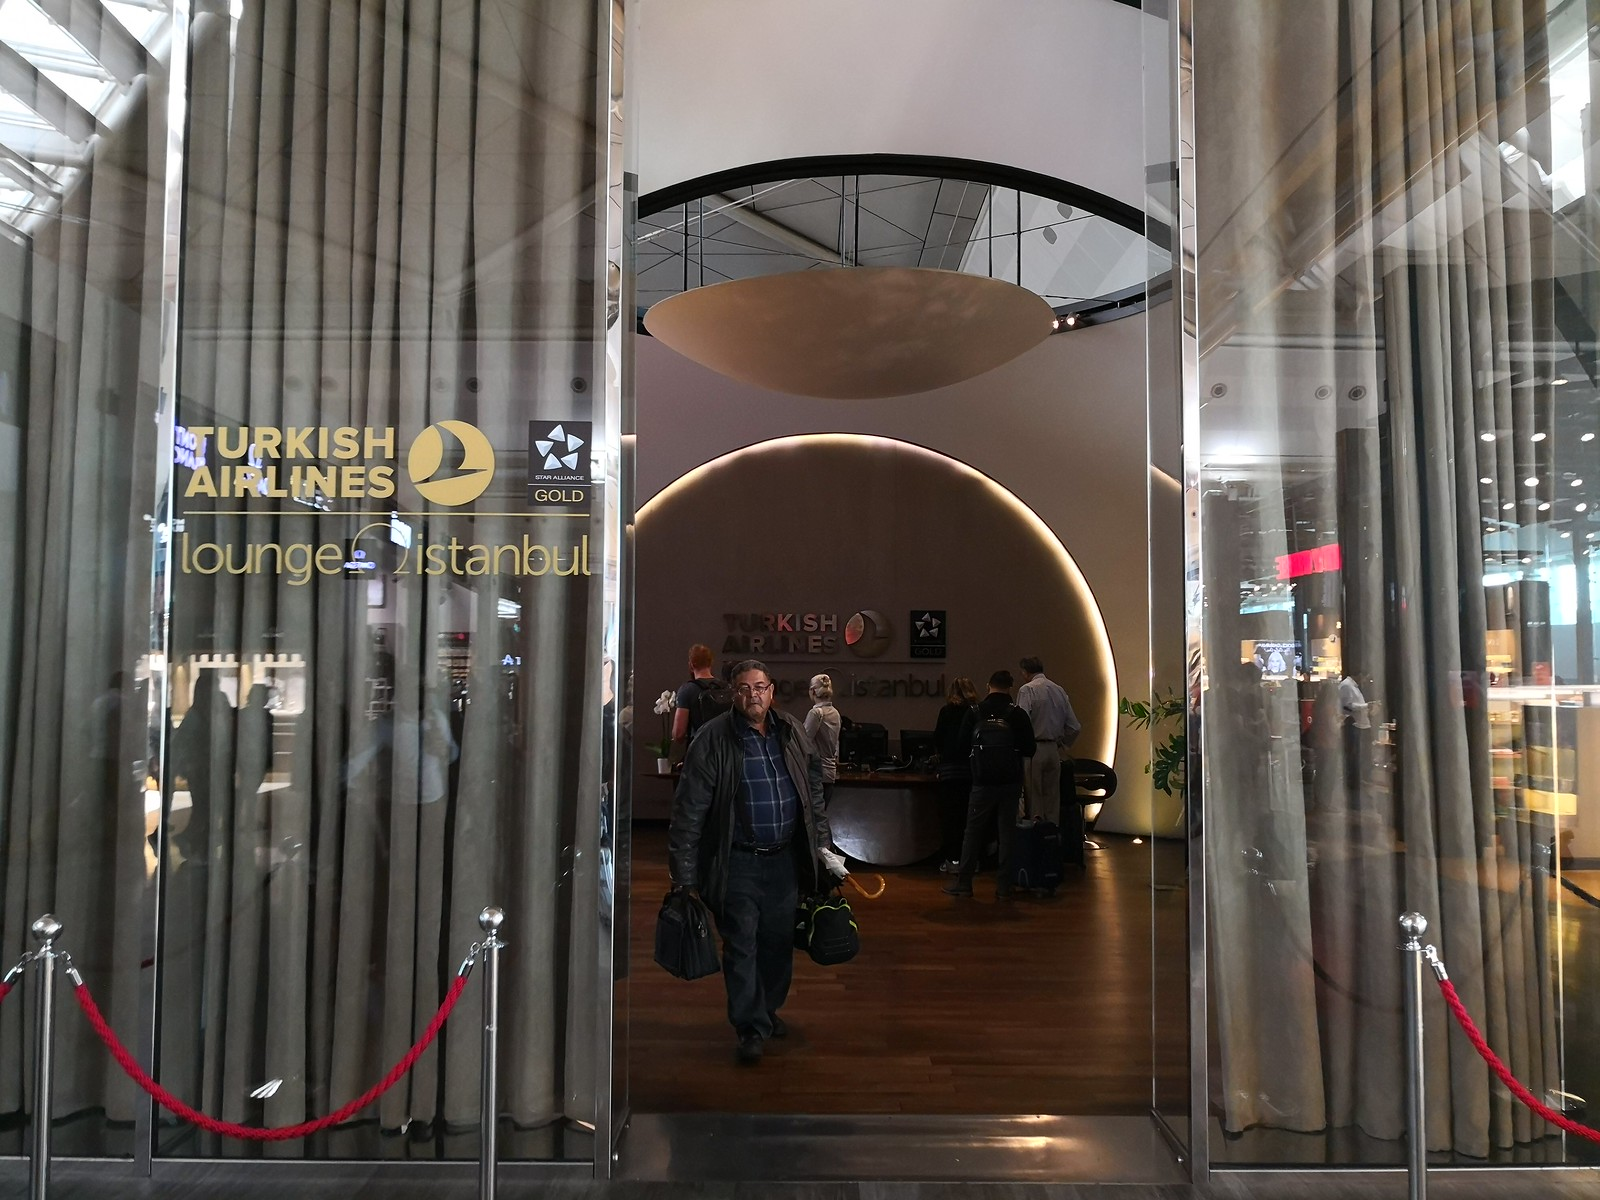 Entrance to the Turkish Airlines lounge